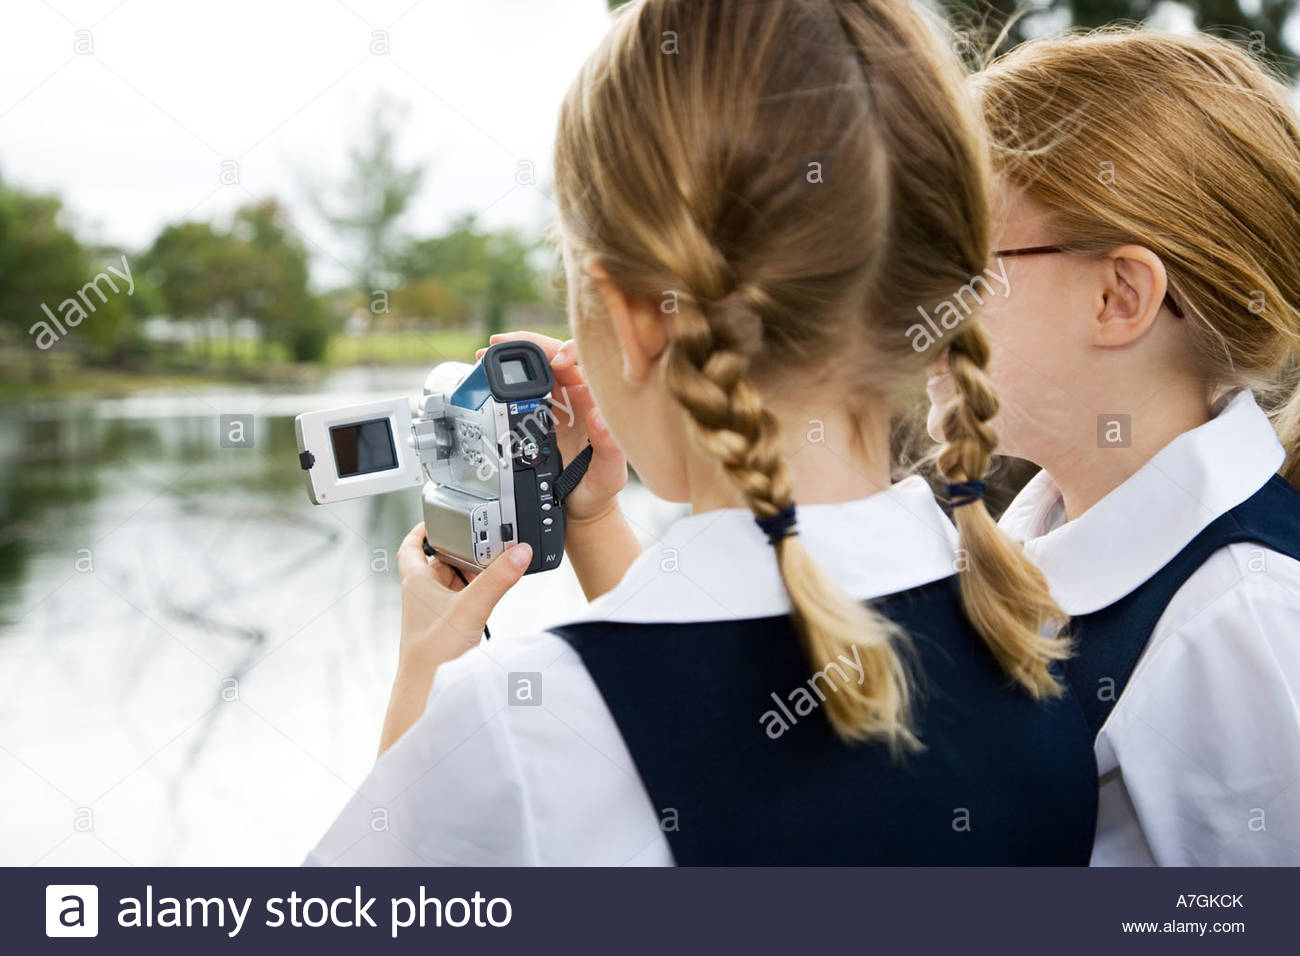 Two schoolgirls using a video camera - Stock Image